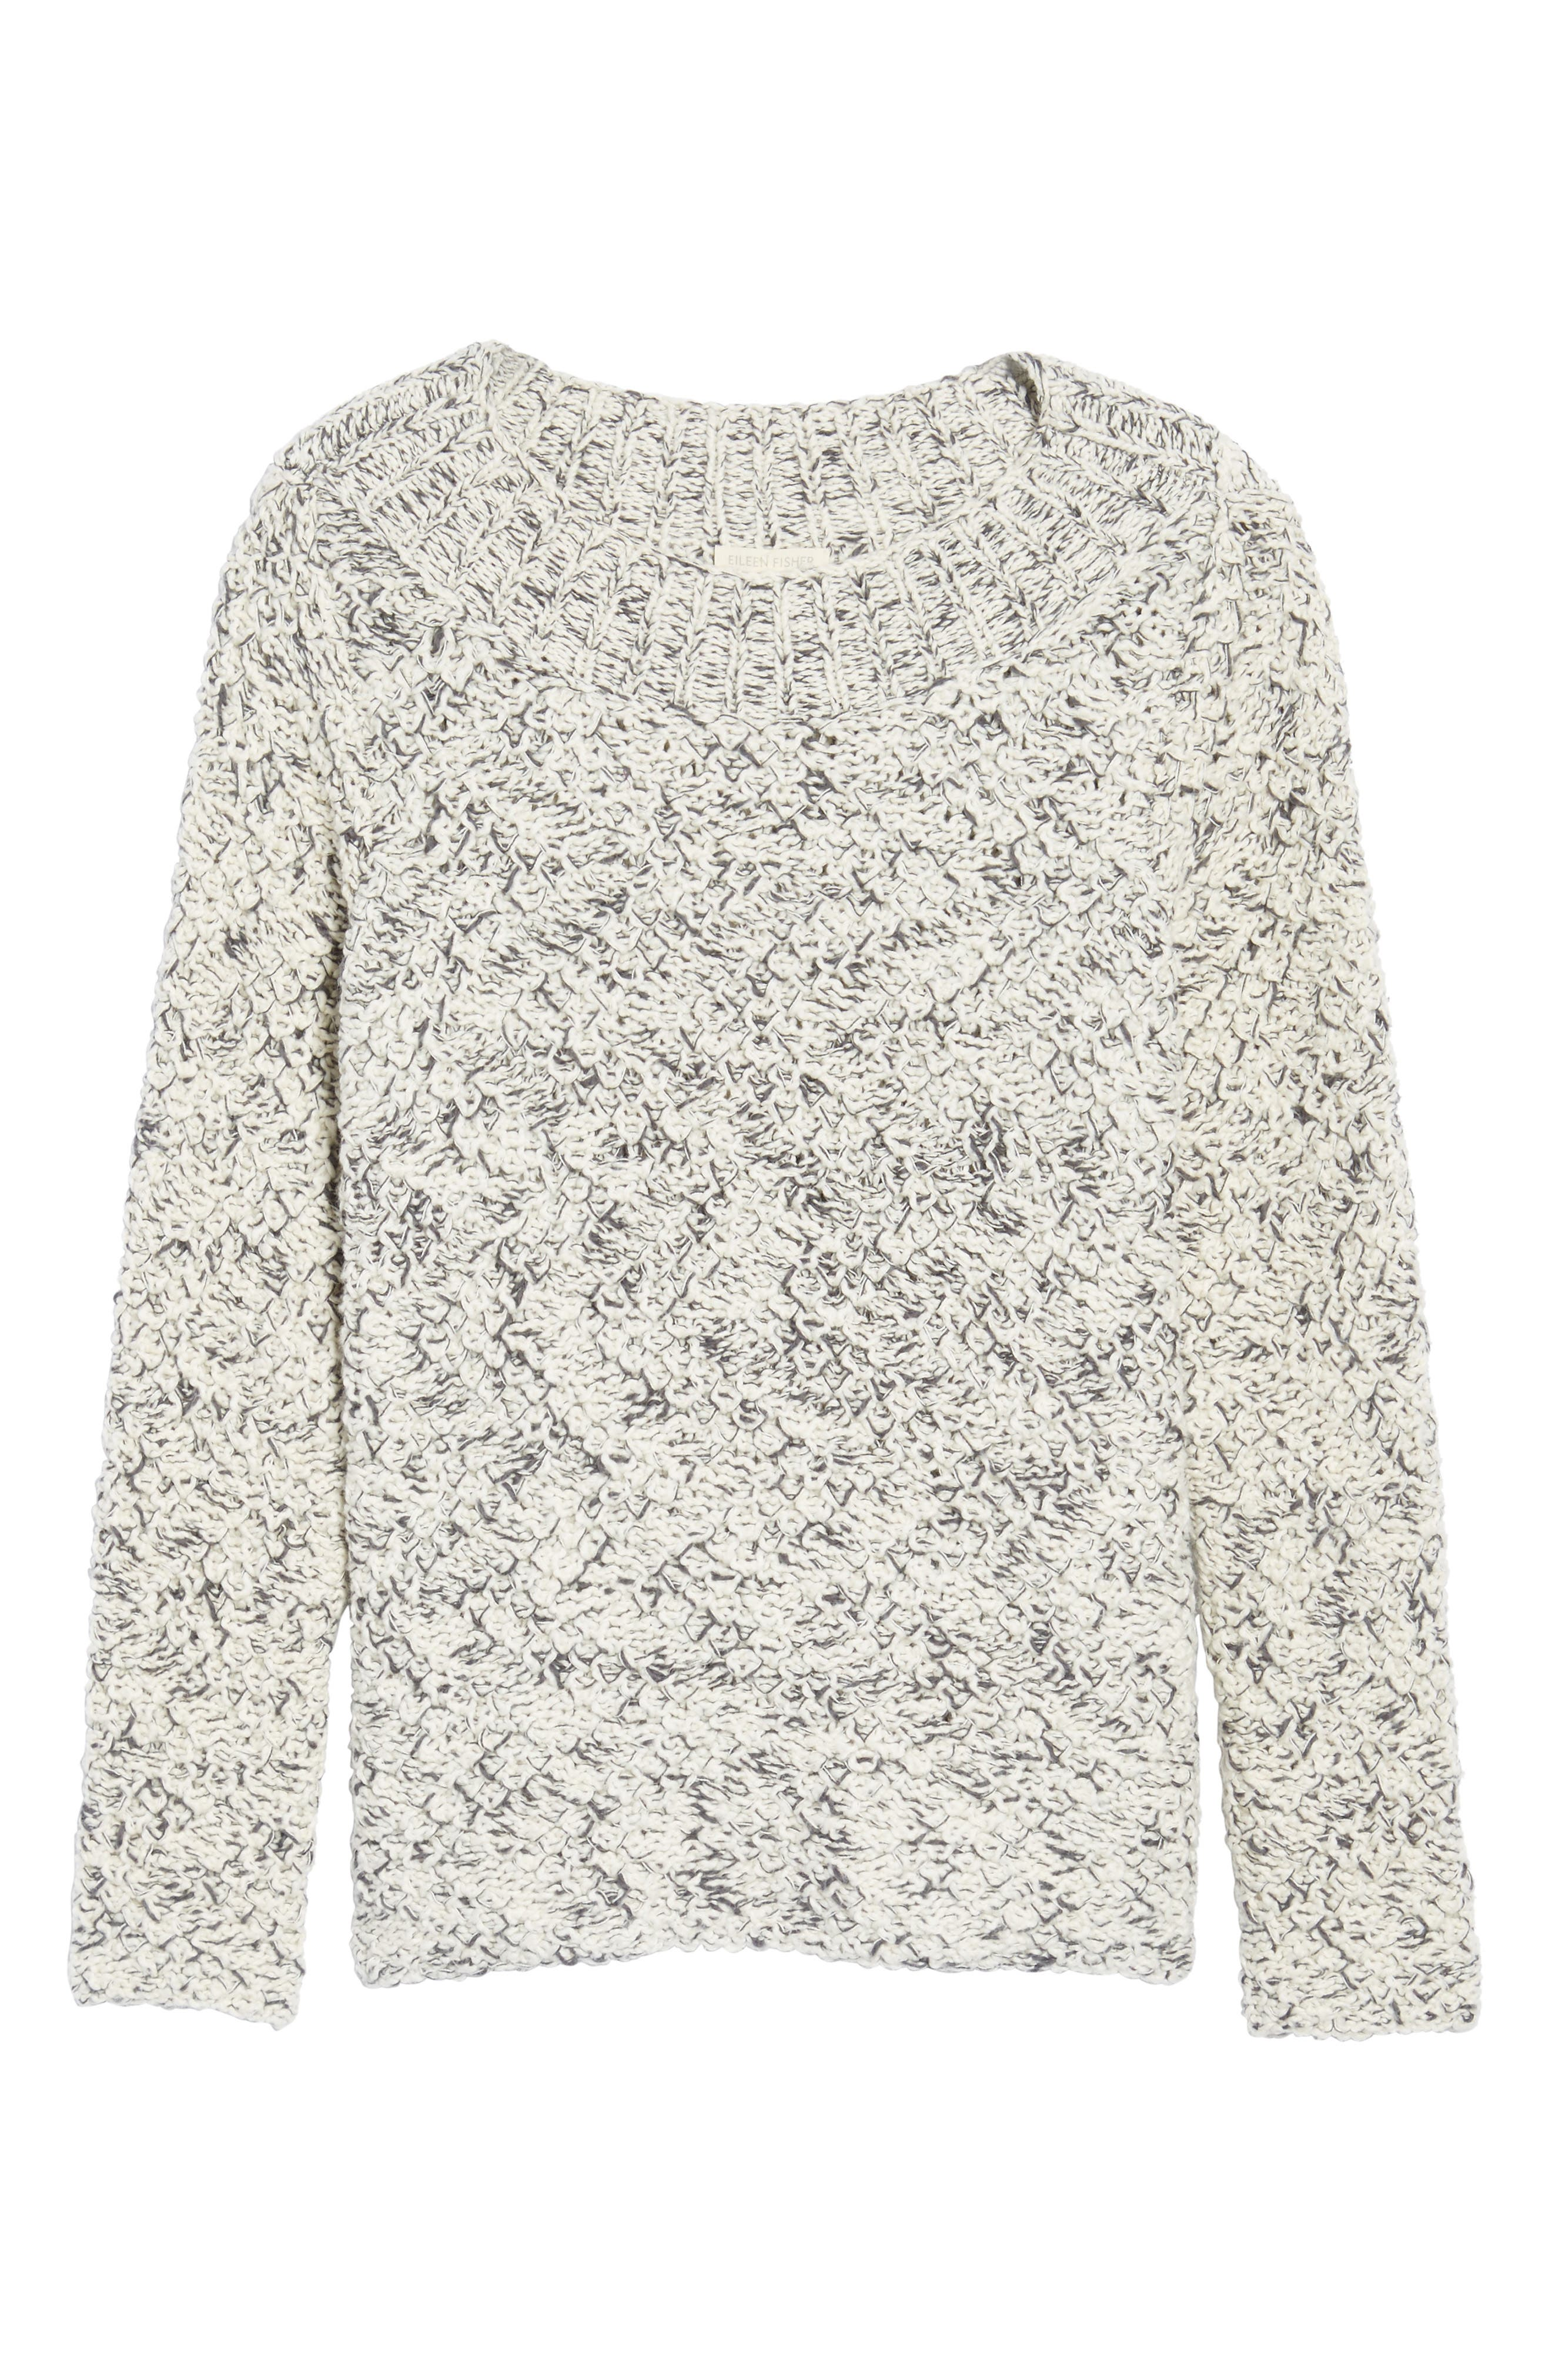 Marled Organic Cotton Sweater,                             Alternate thumbnail 6, color,                             903